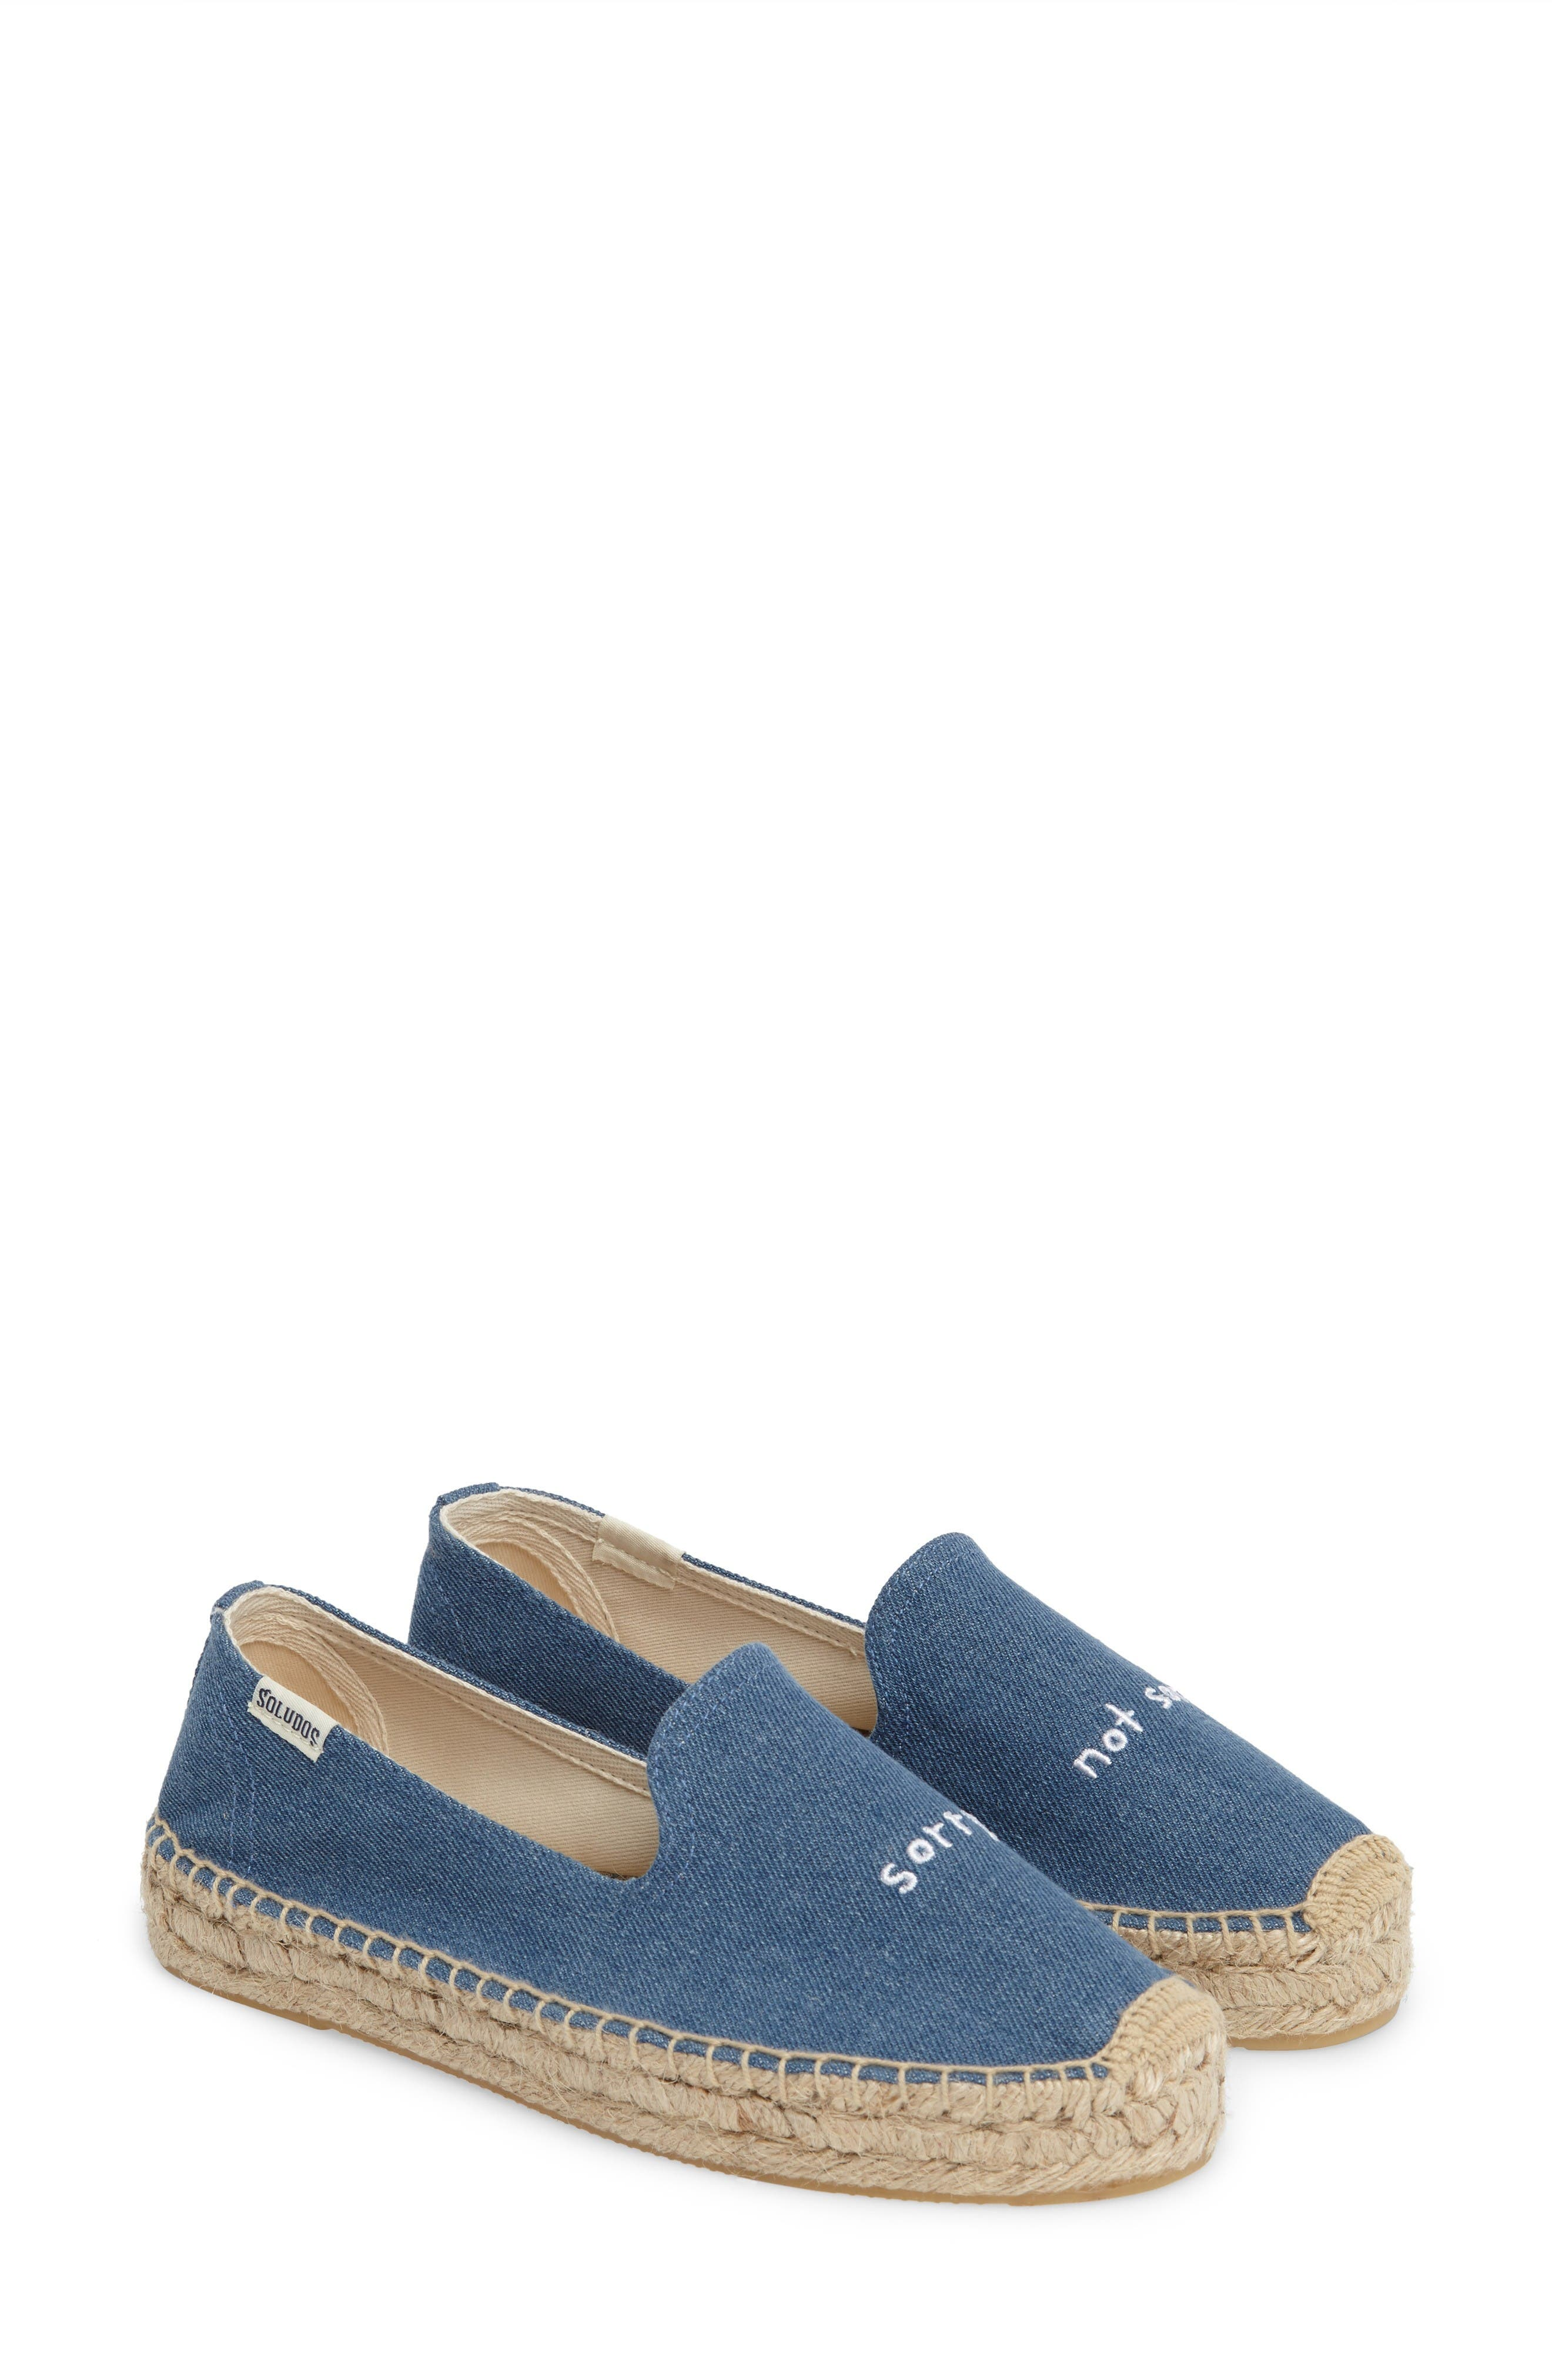 Soludos x ASHKAHN Sorry Embroidered Platform Espadrille (Women)